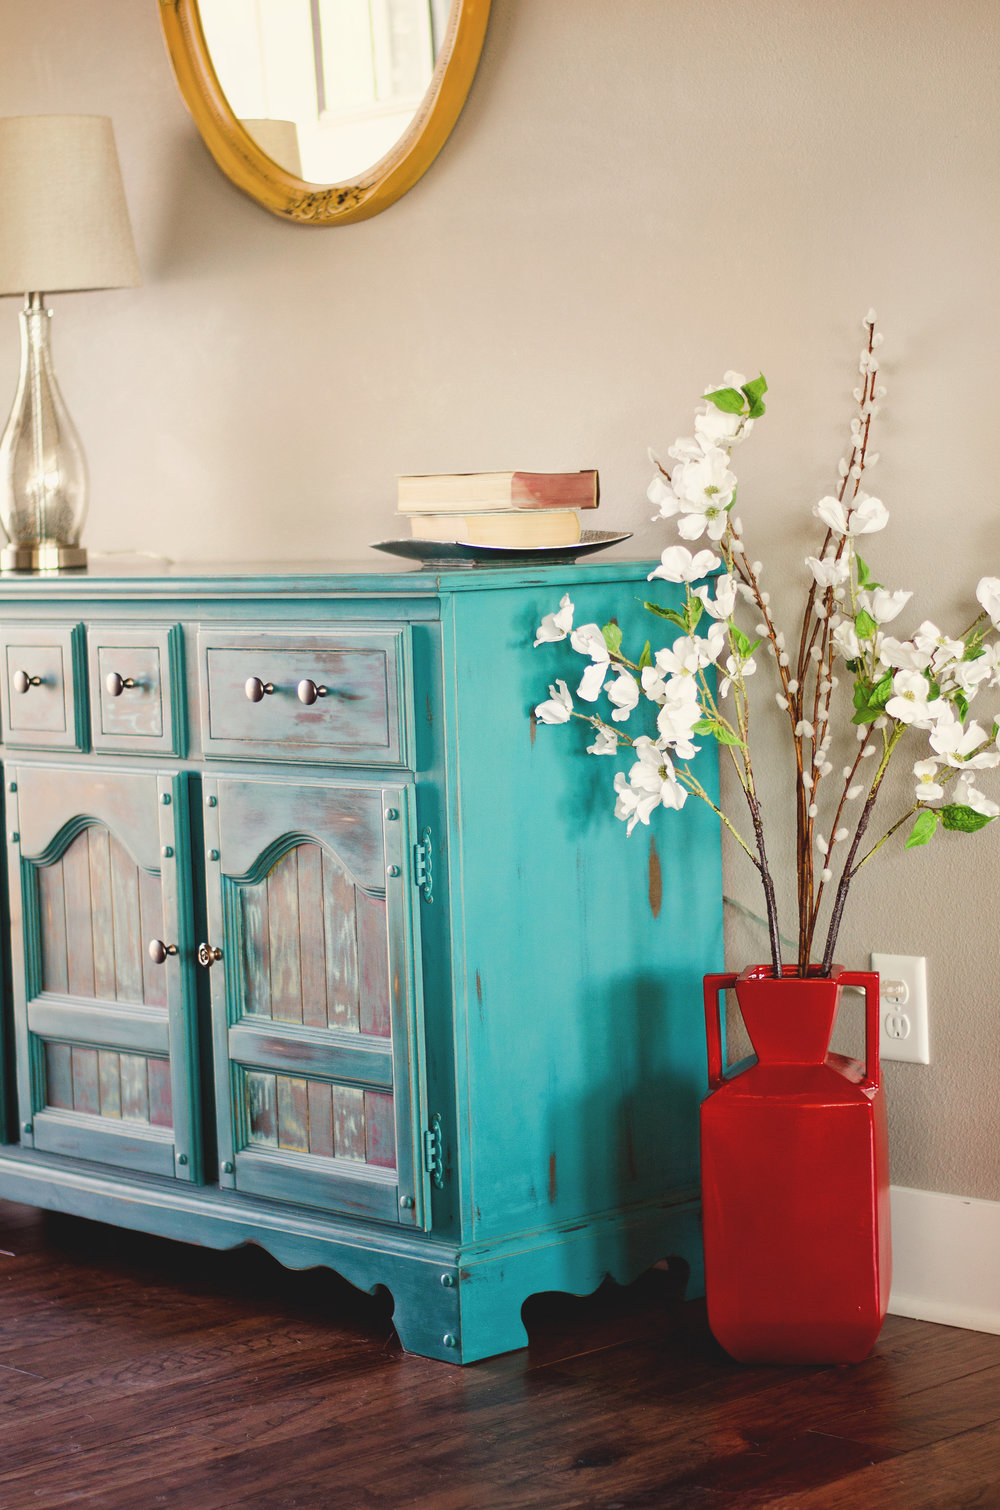 Turquoise cabinet and large red vase with flowers. H.Prall & Co. | hprallandco.com